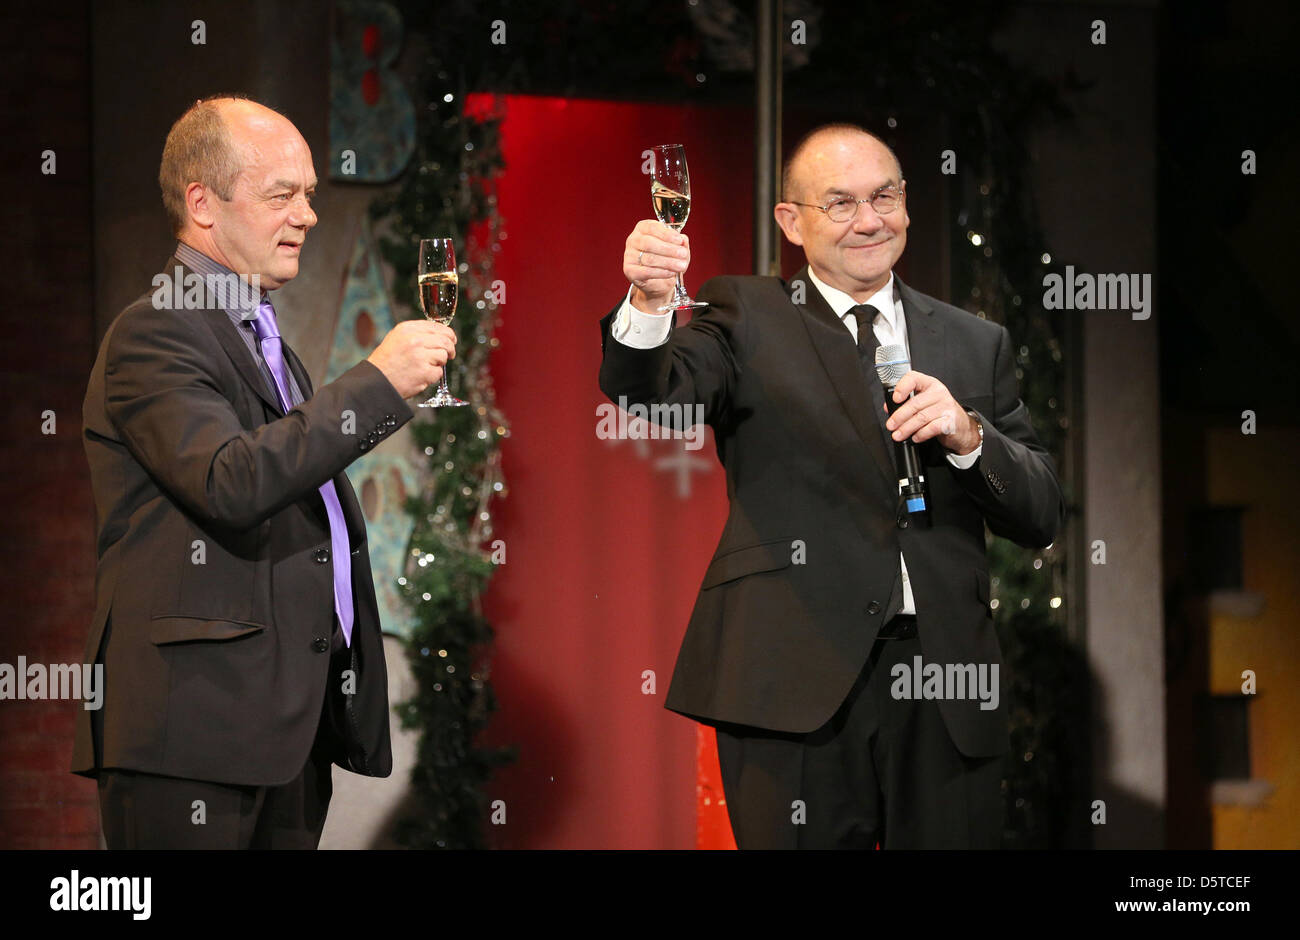 Entertainer and theatre owner Corny Littmann (L) and his business partner Norbert Aust stand on the stage at Schmidt's - Stock Image